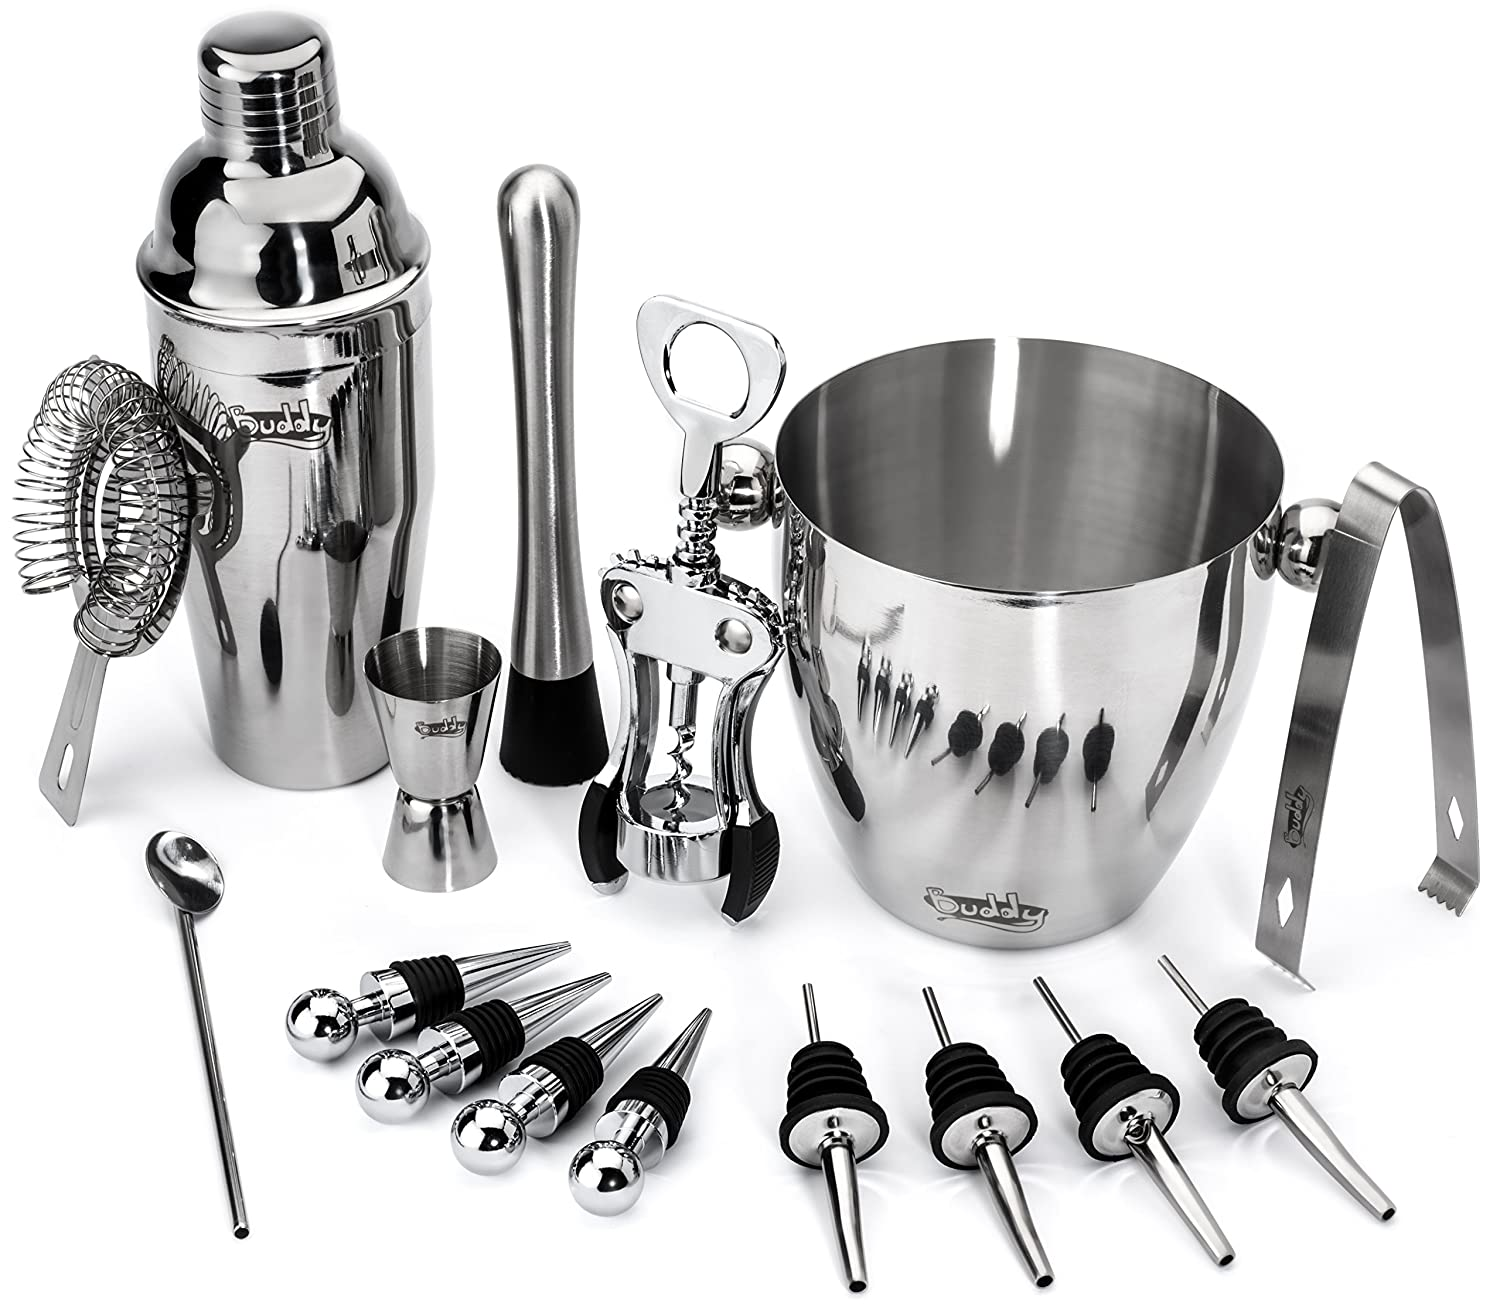 Buddy 16-Piece Wine and Cocktail Mixing Bar Set–Bartender Kit w/Essential Barware Tools-Large 25 oz. Stainless Steel Shaker, Ice Bucket, Muddler, Double Sided Jigger - Free 1000 Cocktail Recipes PDF BUDPROD0001